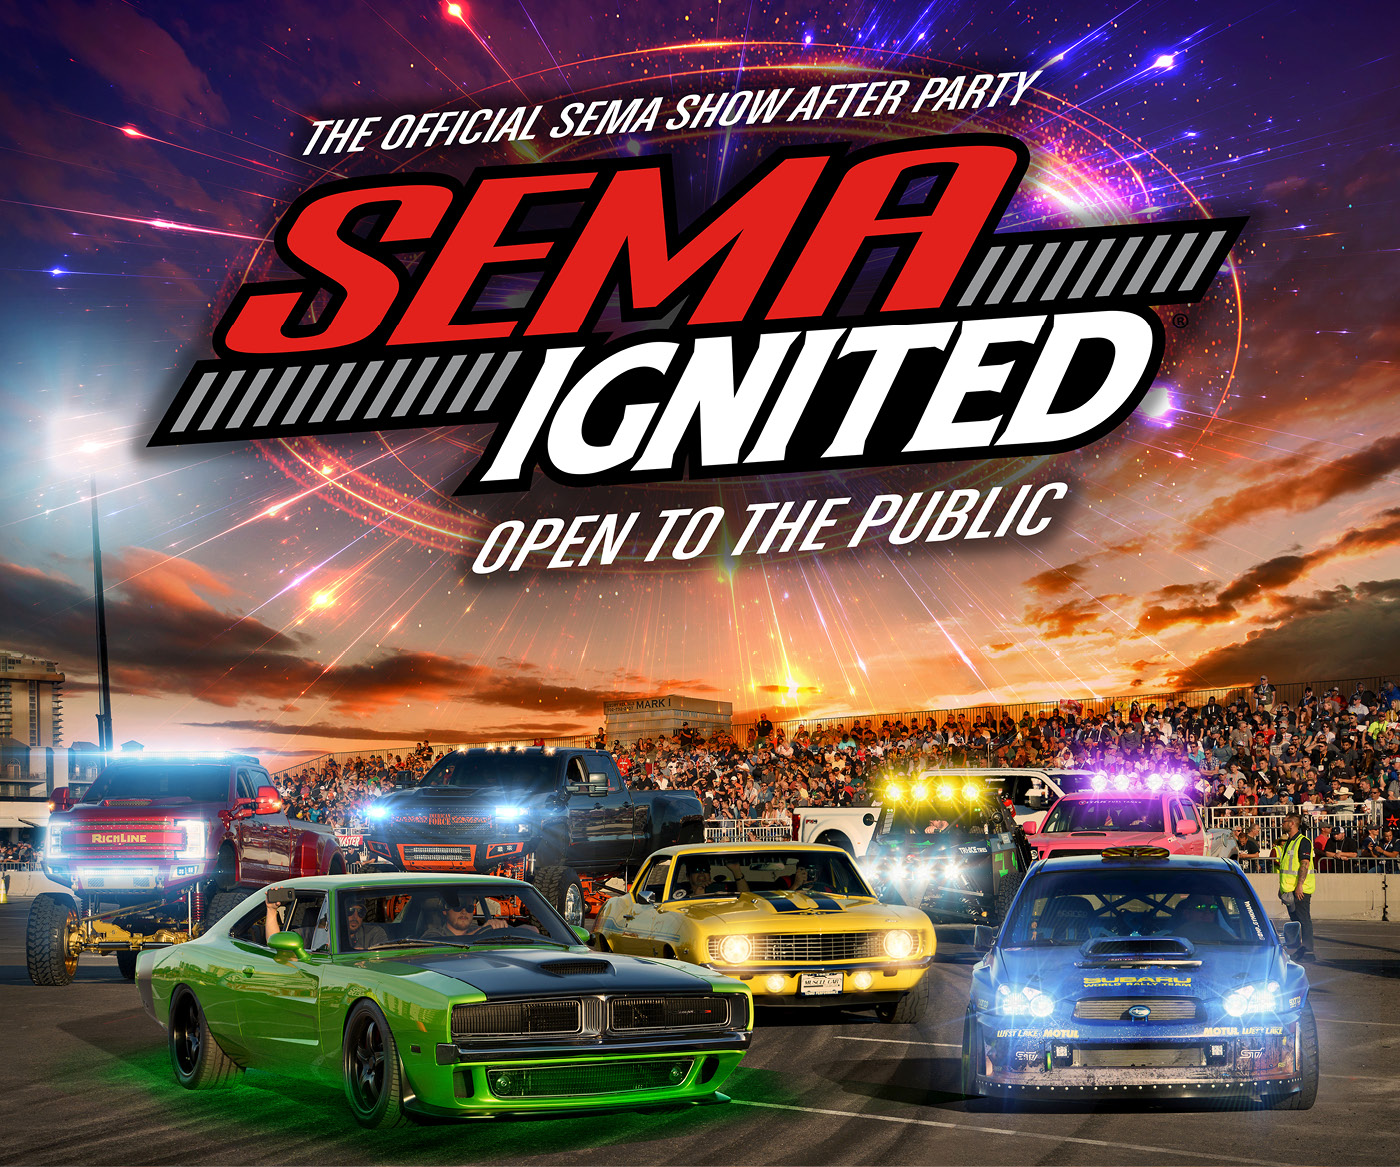 SEMA Ignited - After Party